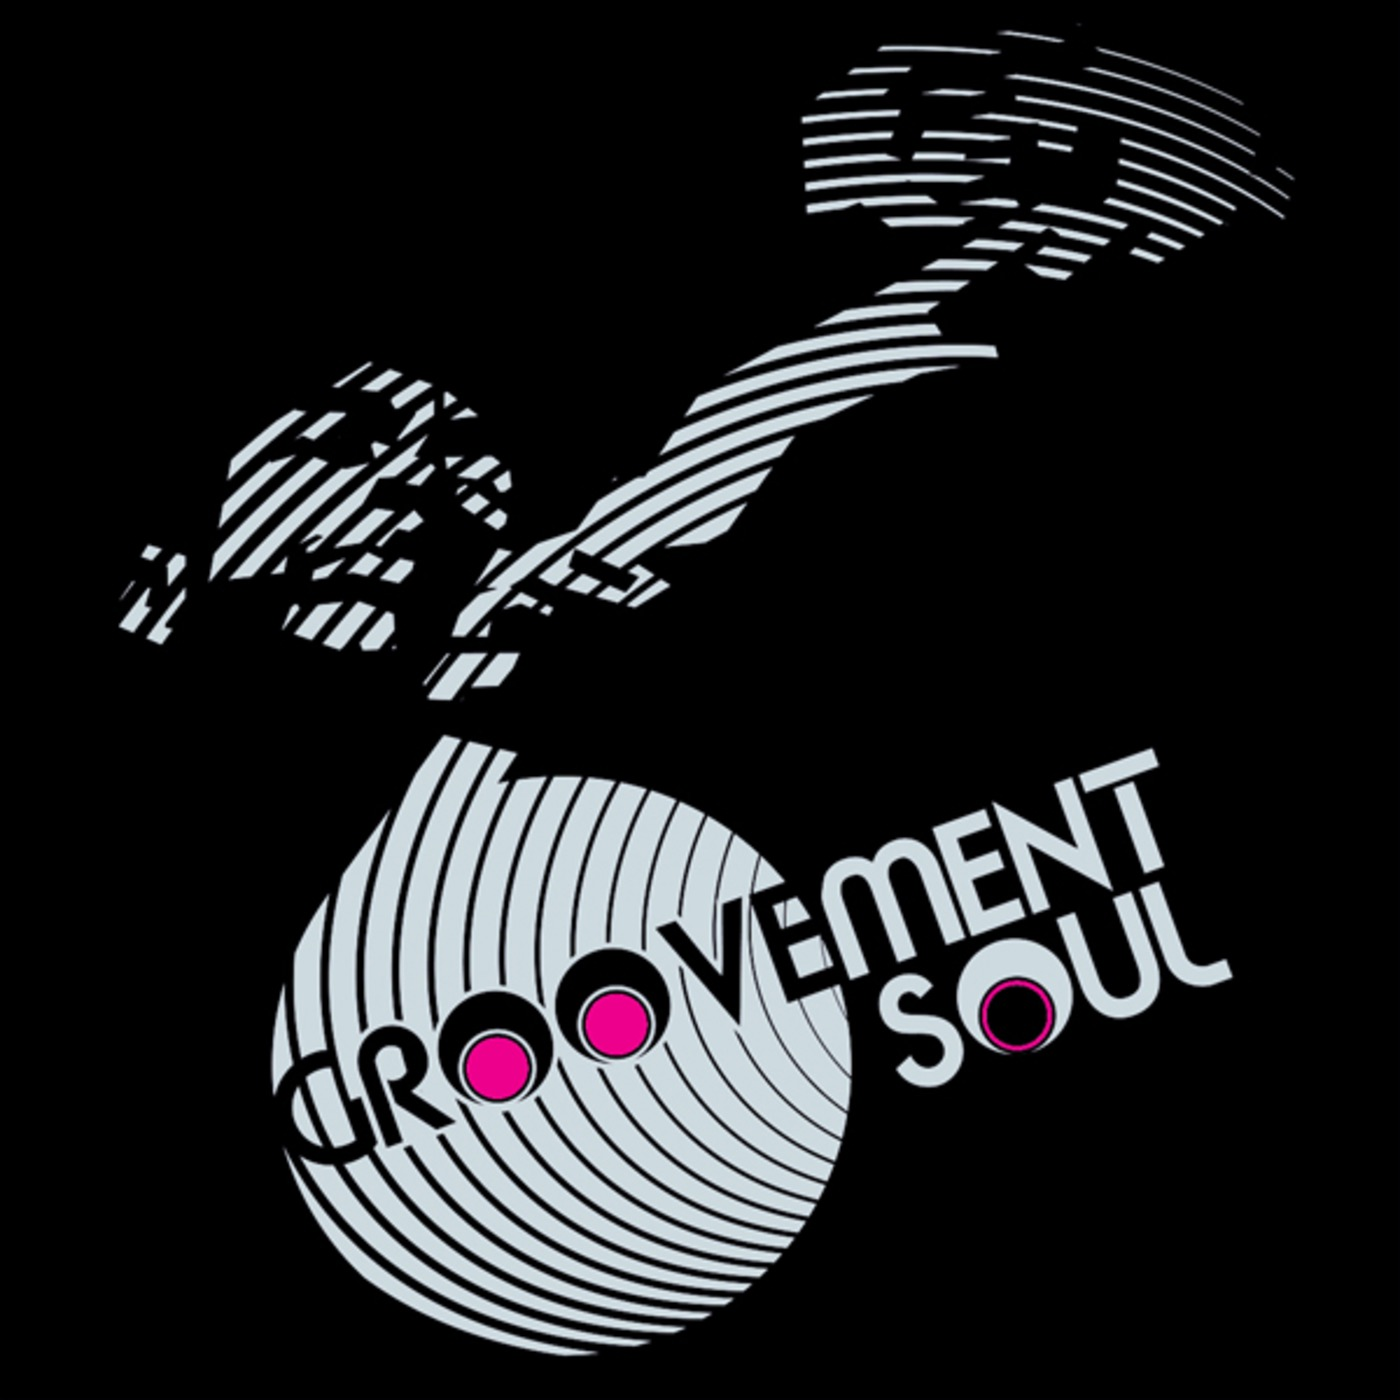 Groovement Soul on Apple Podcasts